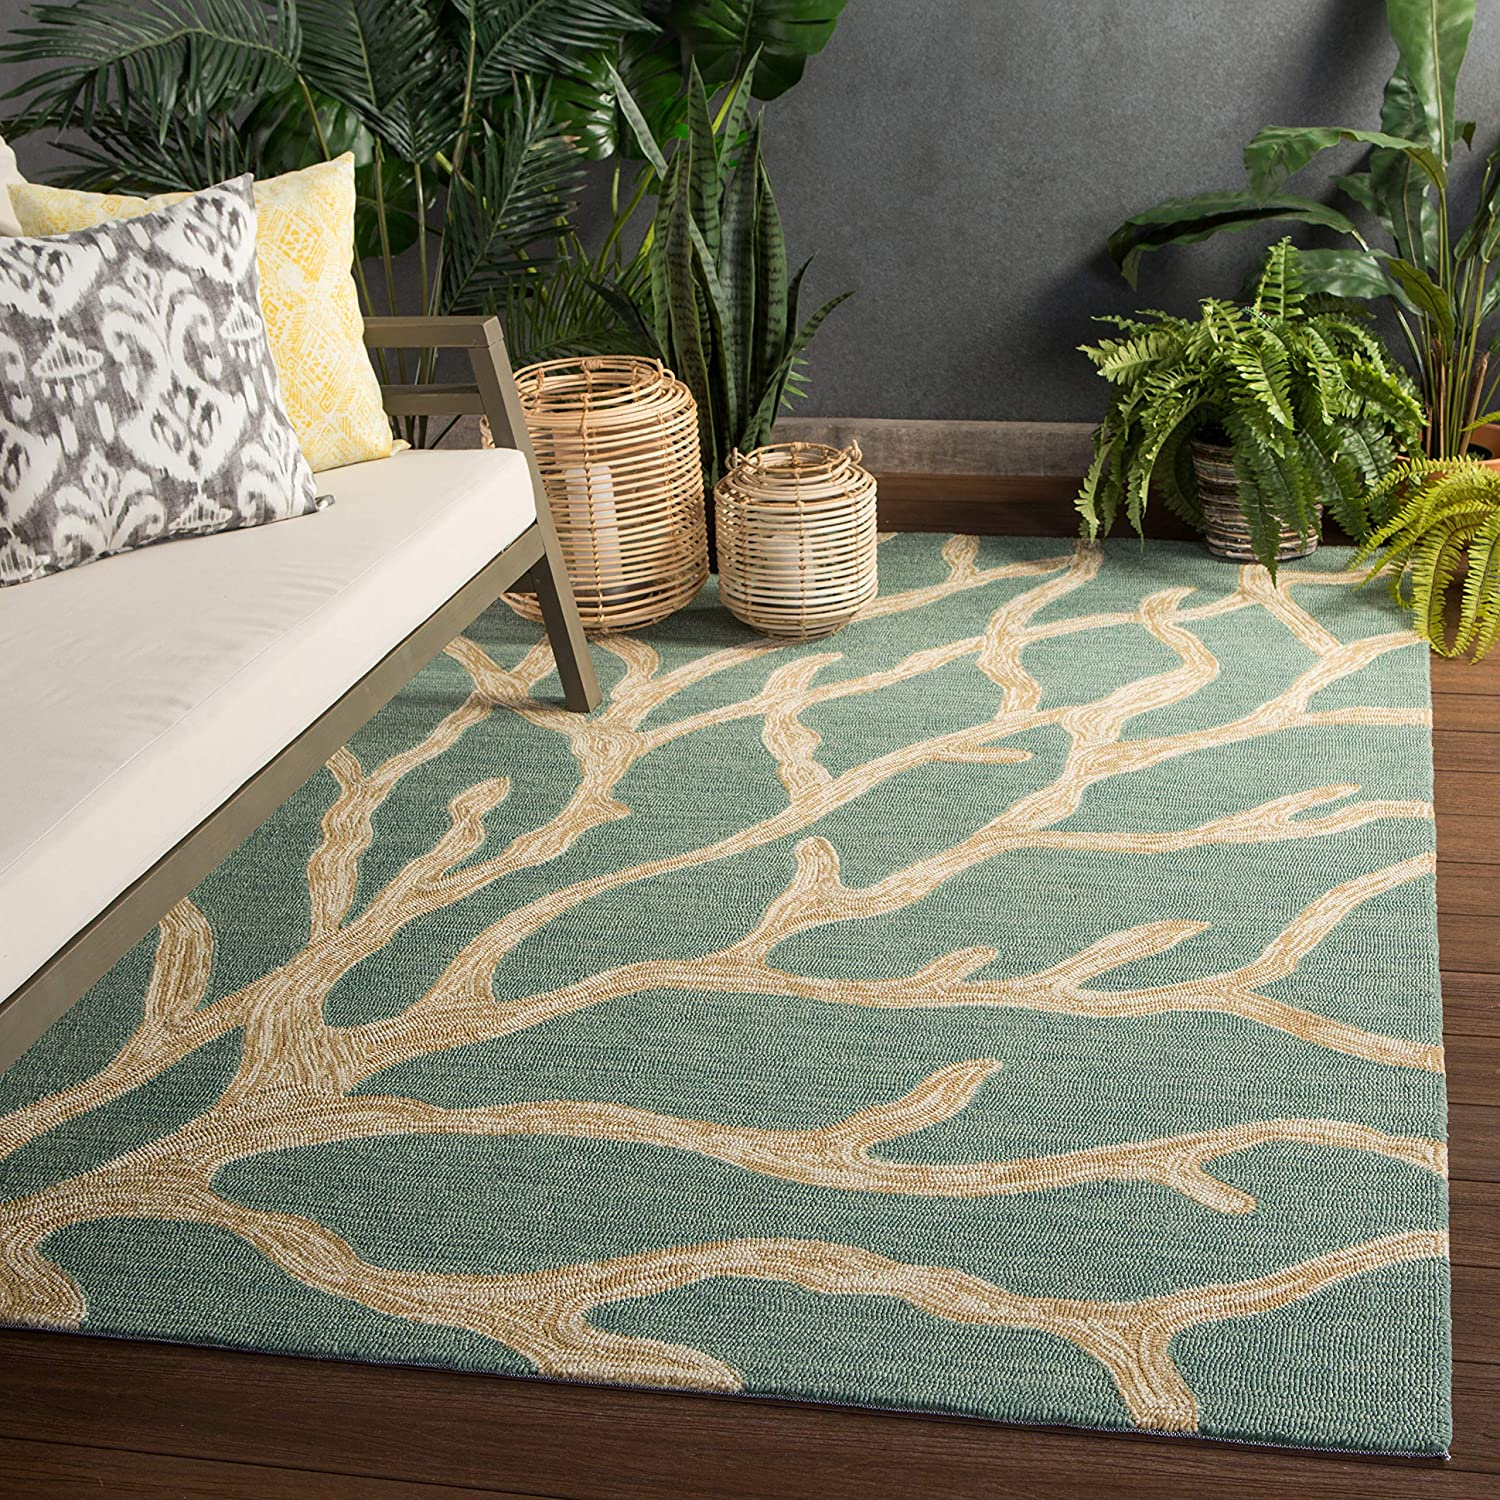 Jaipur Living Coral Indoor Outdoor Max 59% OFF Ranking TOP17 Area Novelty Blue Rug 7'6